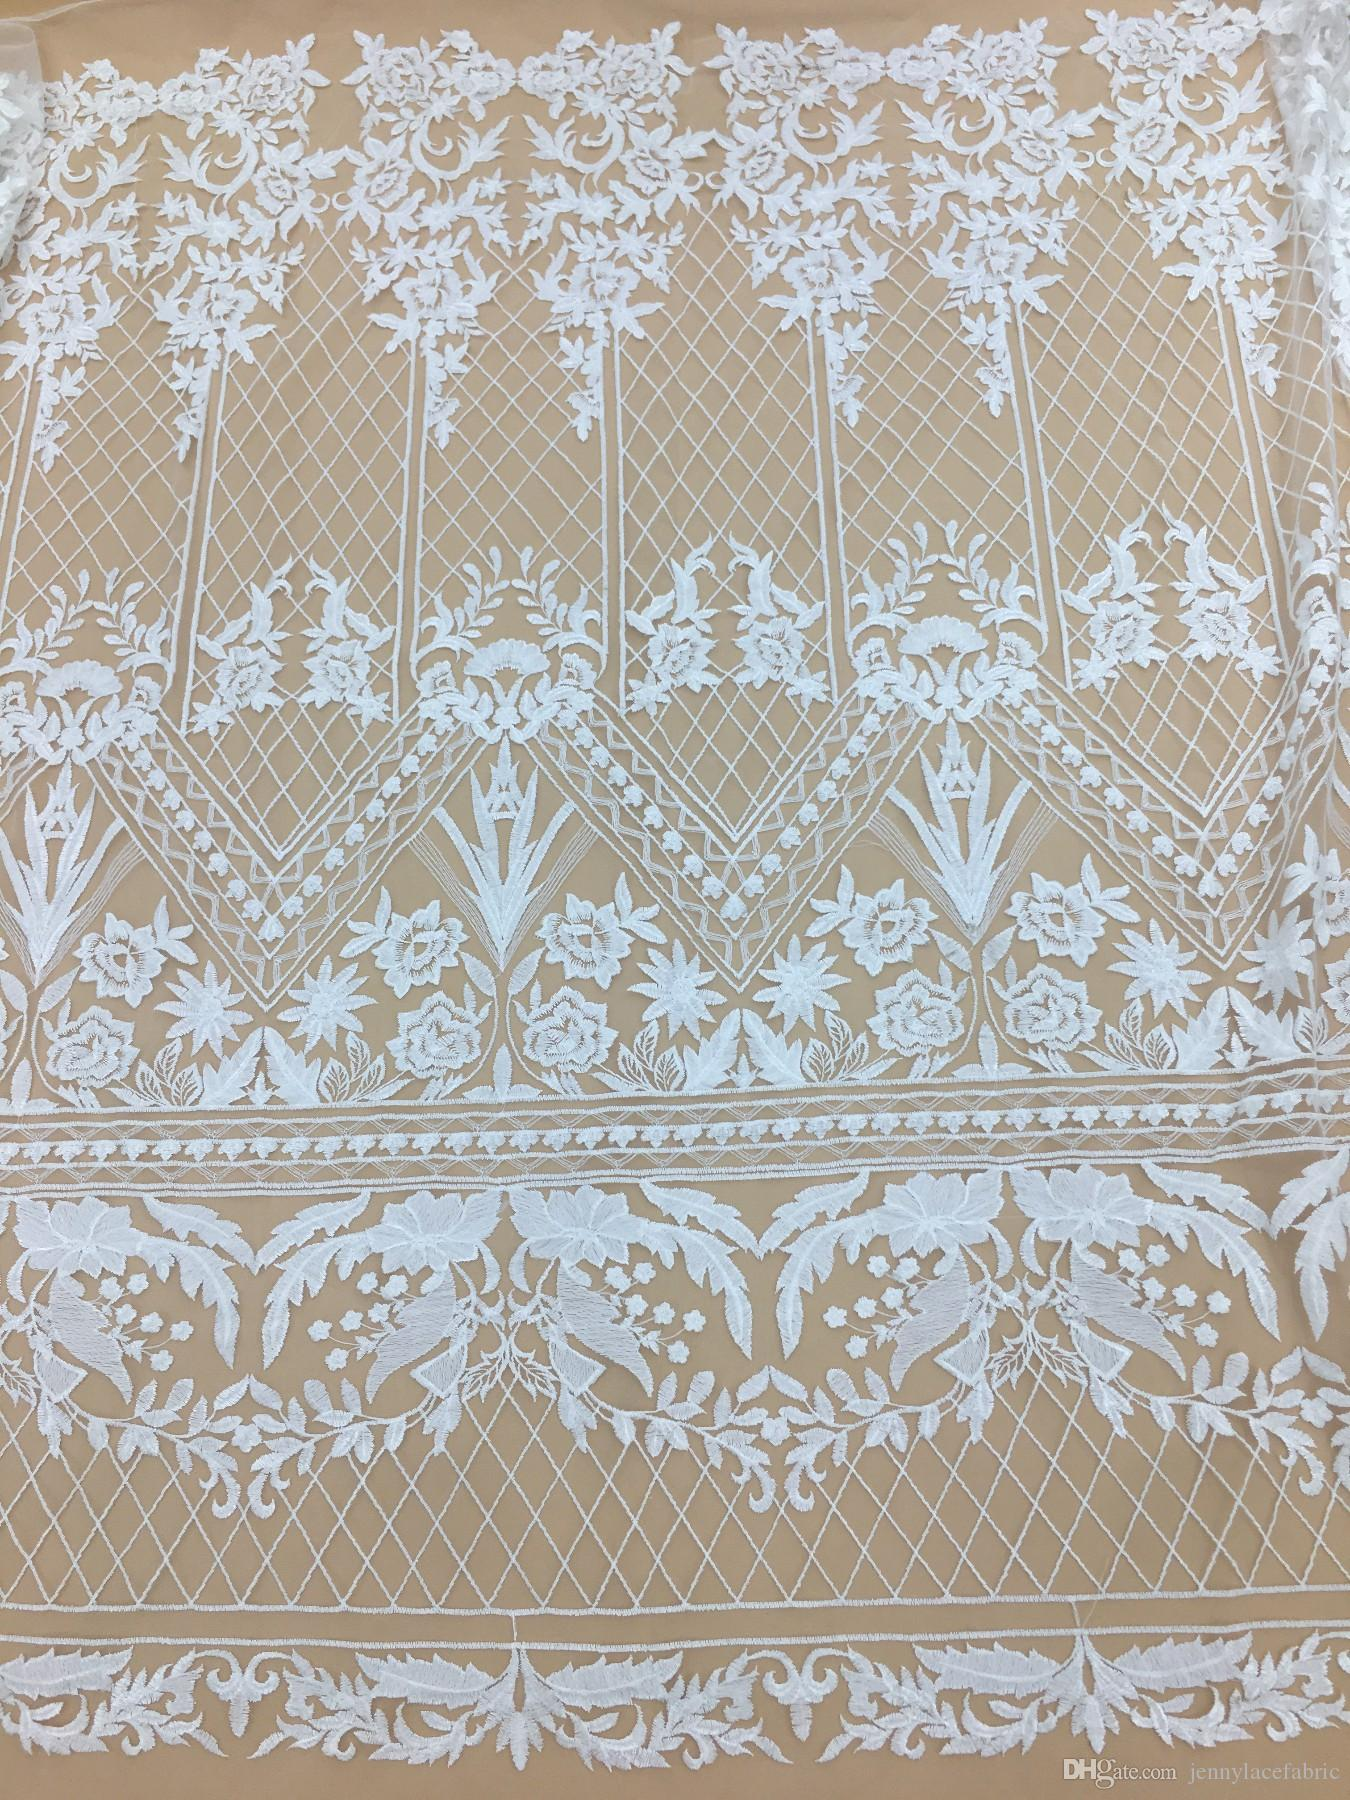 3f38dd06bfe1b Embroidery Mesh Lace Fabric With Floral Dotted